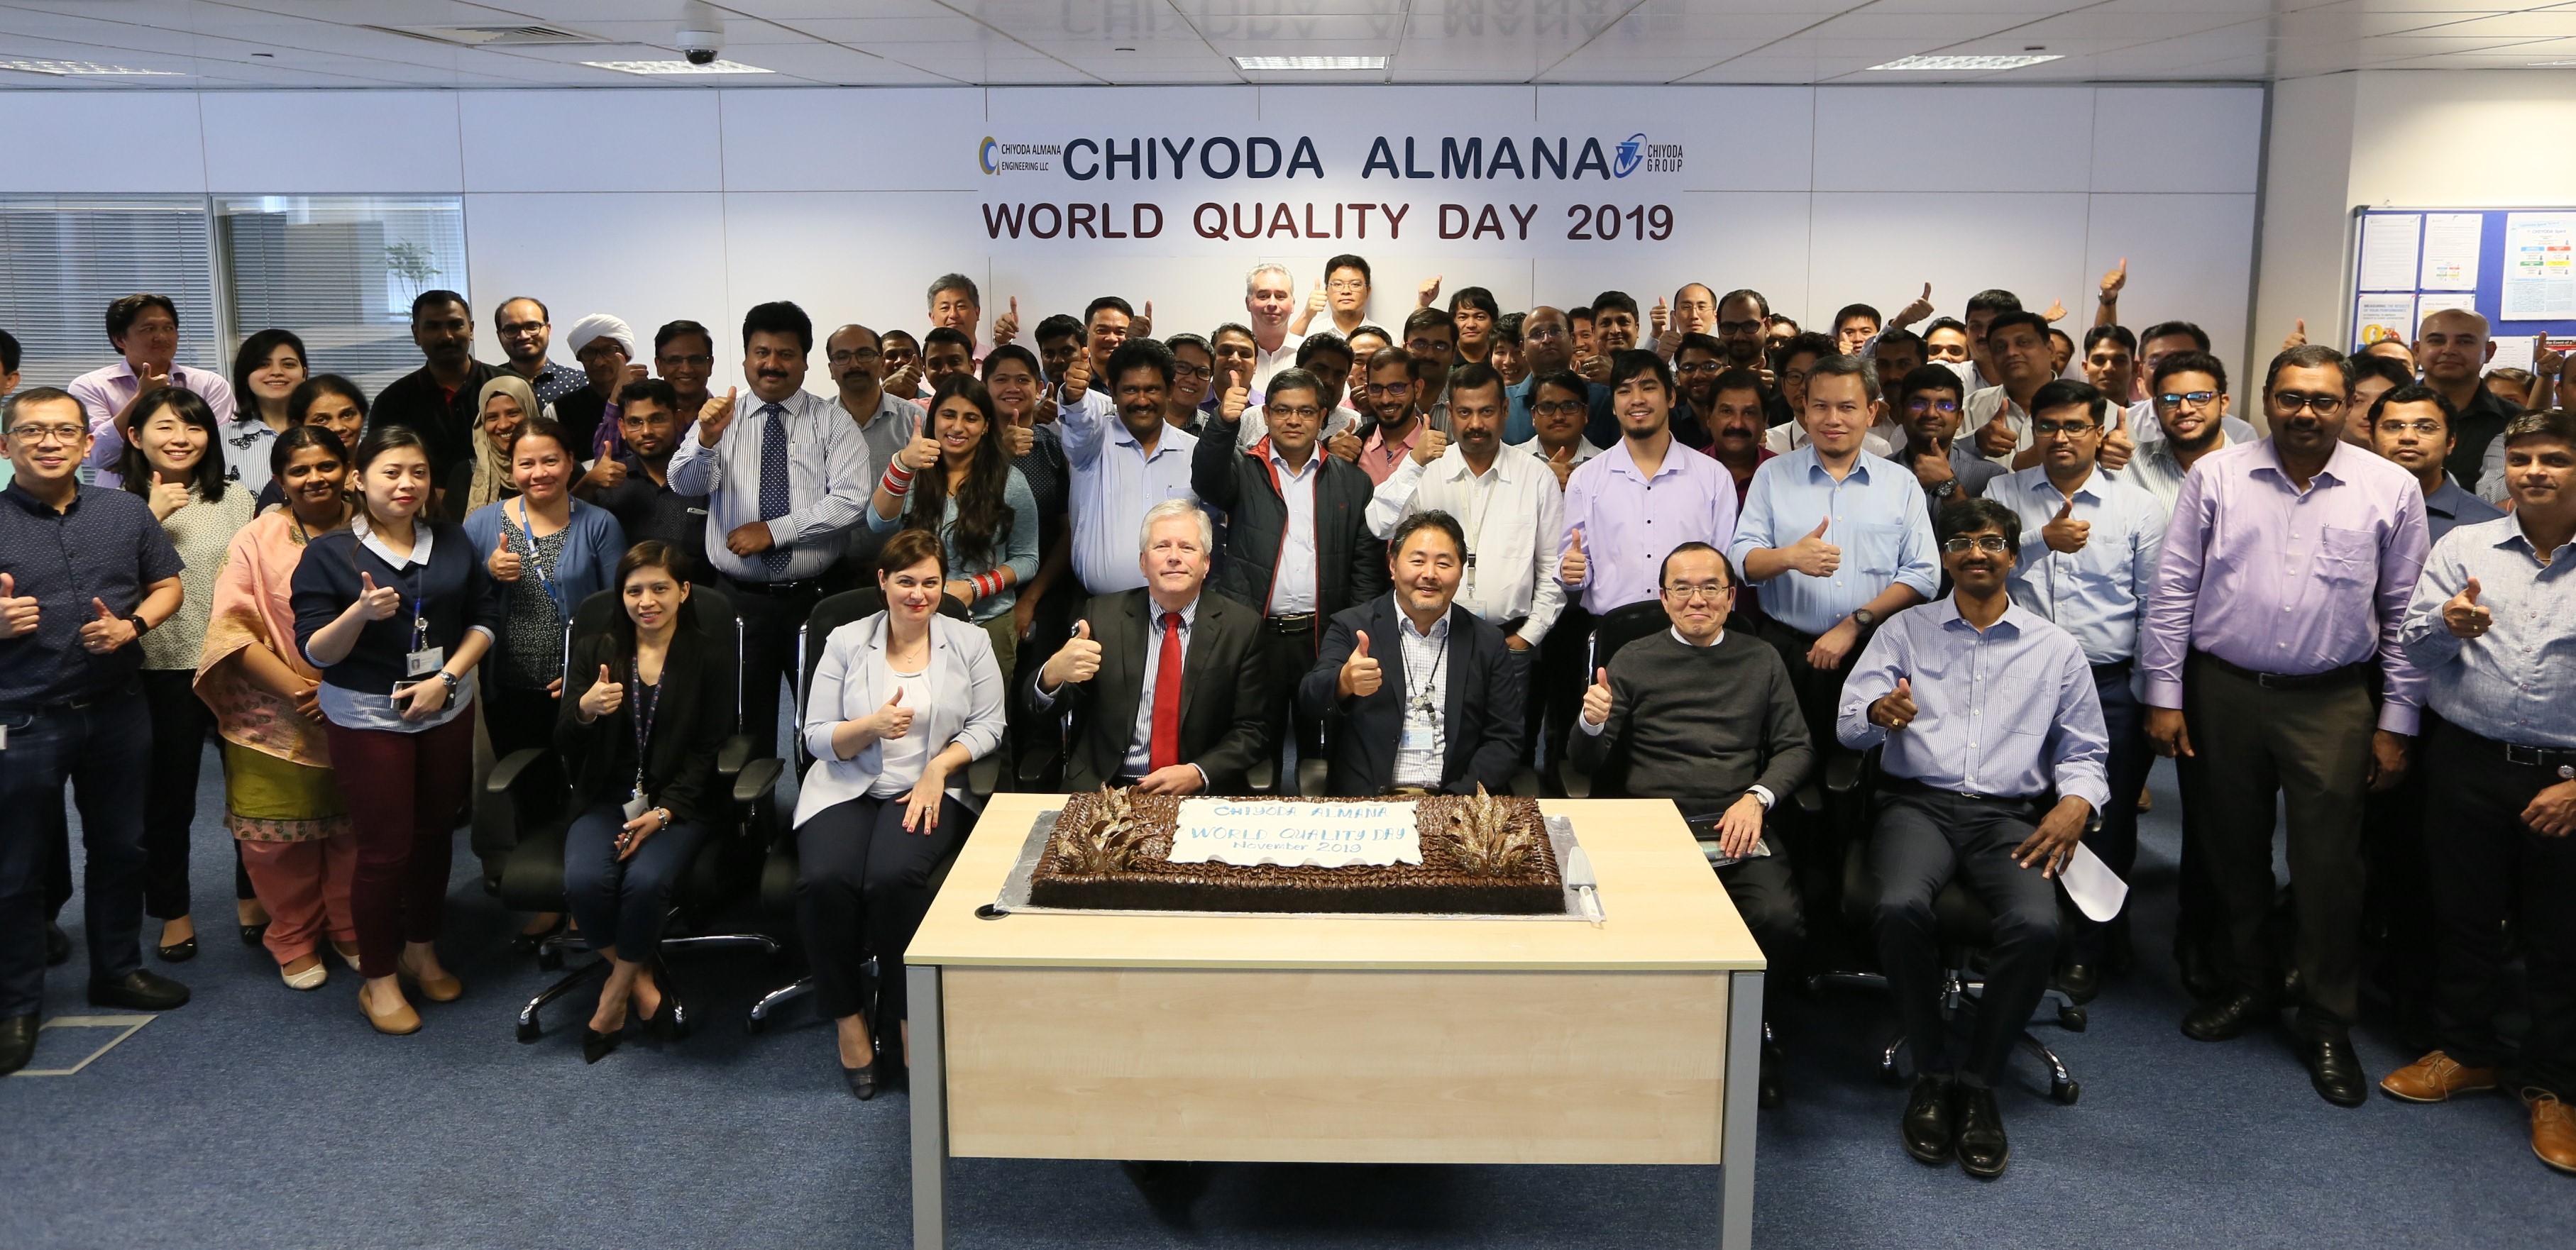 Chiyoda Almana Celebrates the International Quality Day